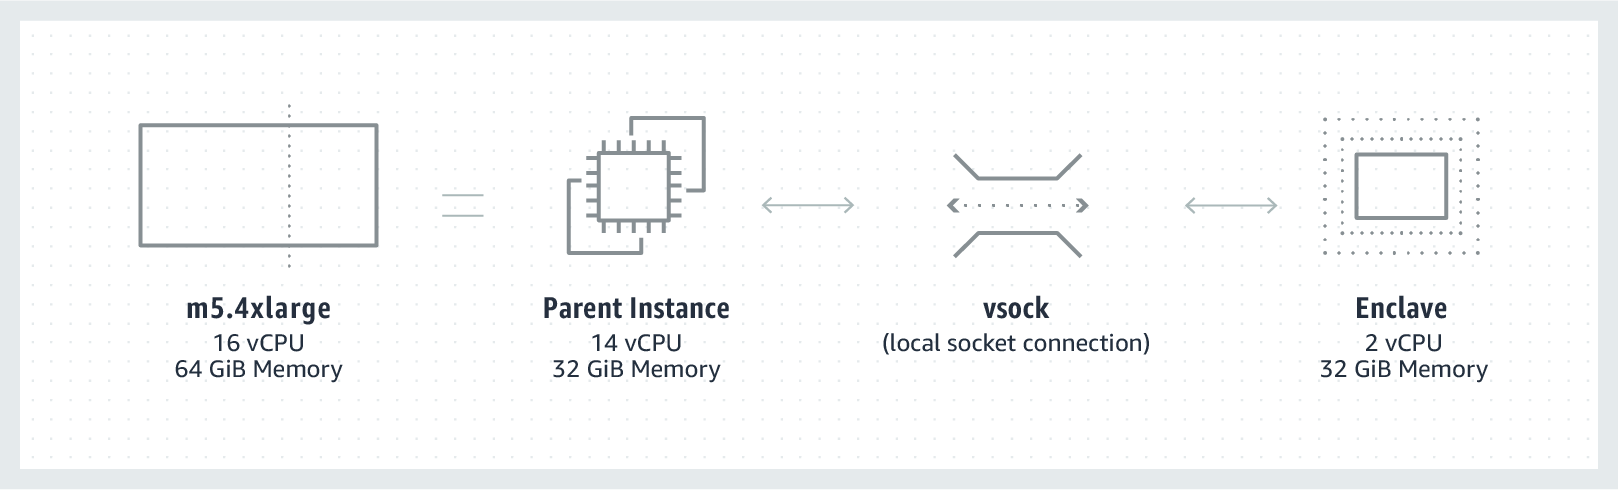 An enclave is created by partitioning the CPU and memory of an EC2 instance, called a parent instance. You can create enclaves with varying combinations of CPU cores and memory. Above is an example using m5.4xlarge split into a parent instance (14 vCPU, 32 GiB Memory) and Enclave (2 vCPU, 32 GiB Memory). Communication between the parent instance and the enclave is done via a secure local connection called vsock.